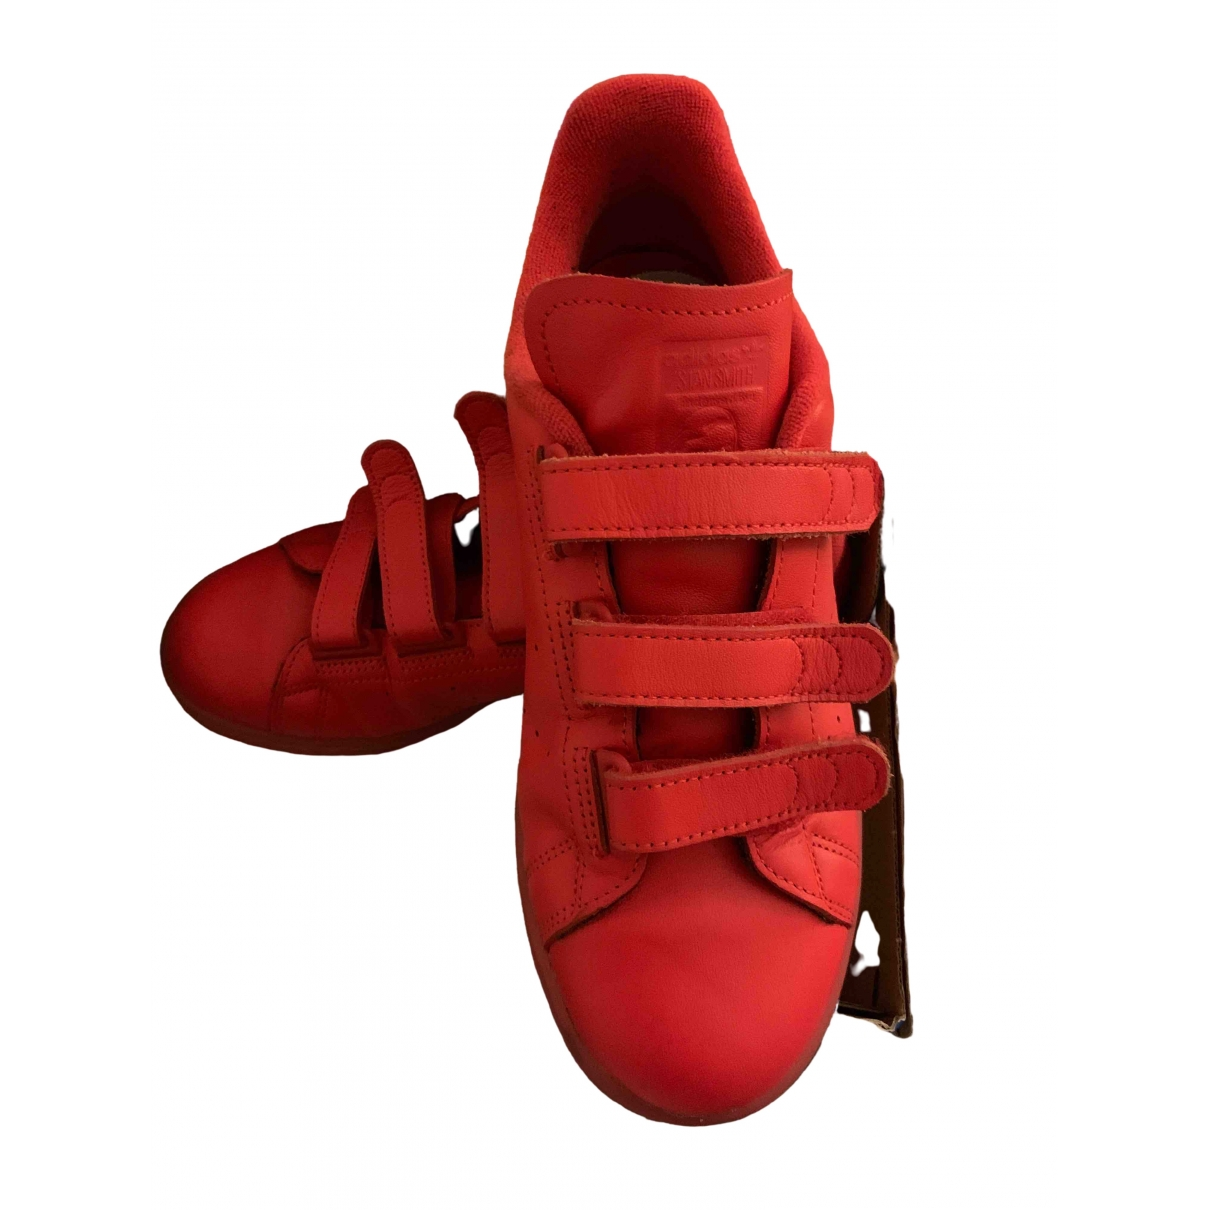 Adidas Stan Smith Red Leather Trainers for Men 6 US